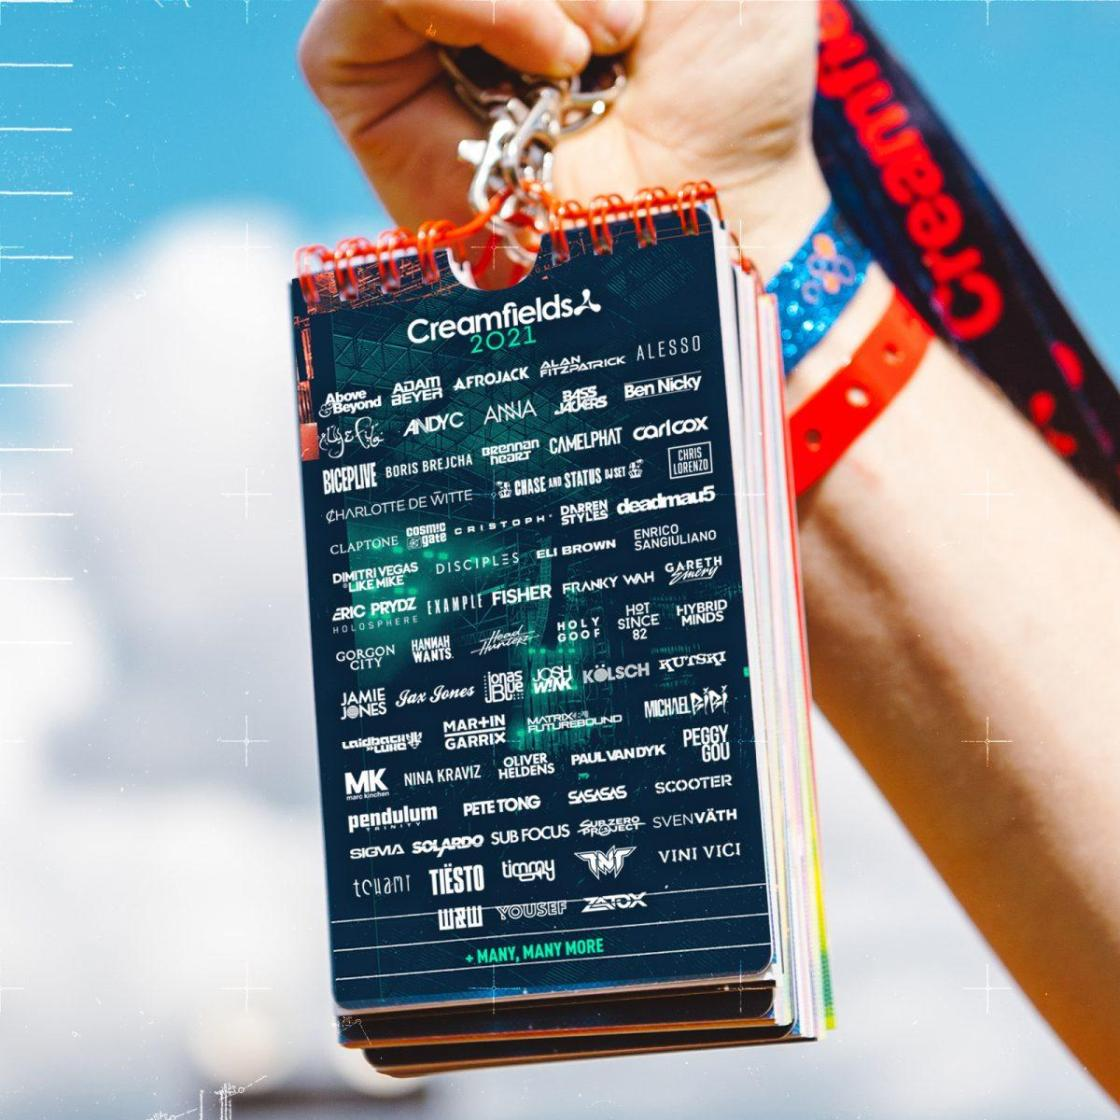 When you flick through your lanyard with this MASSIVE lineup!  Secure your ticke...